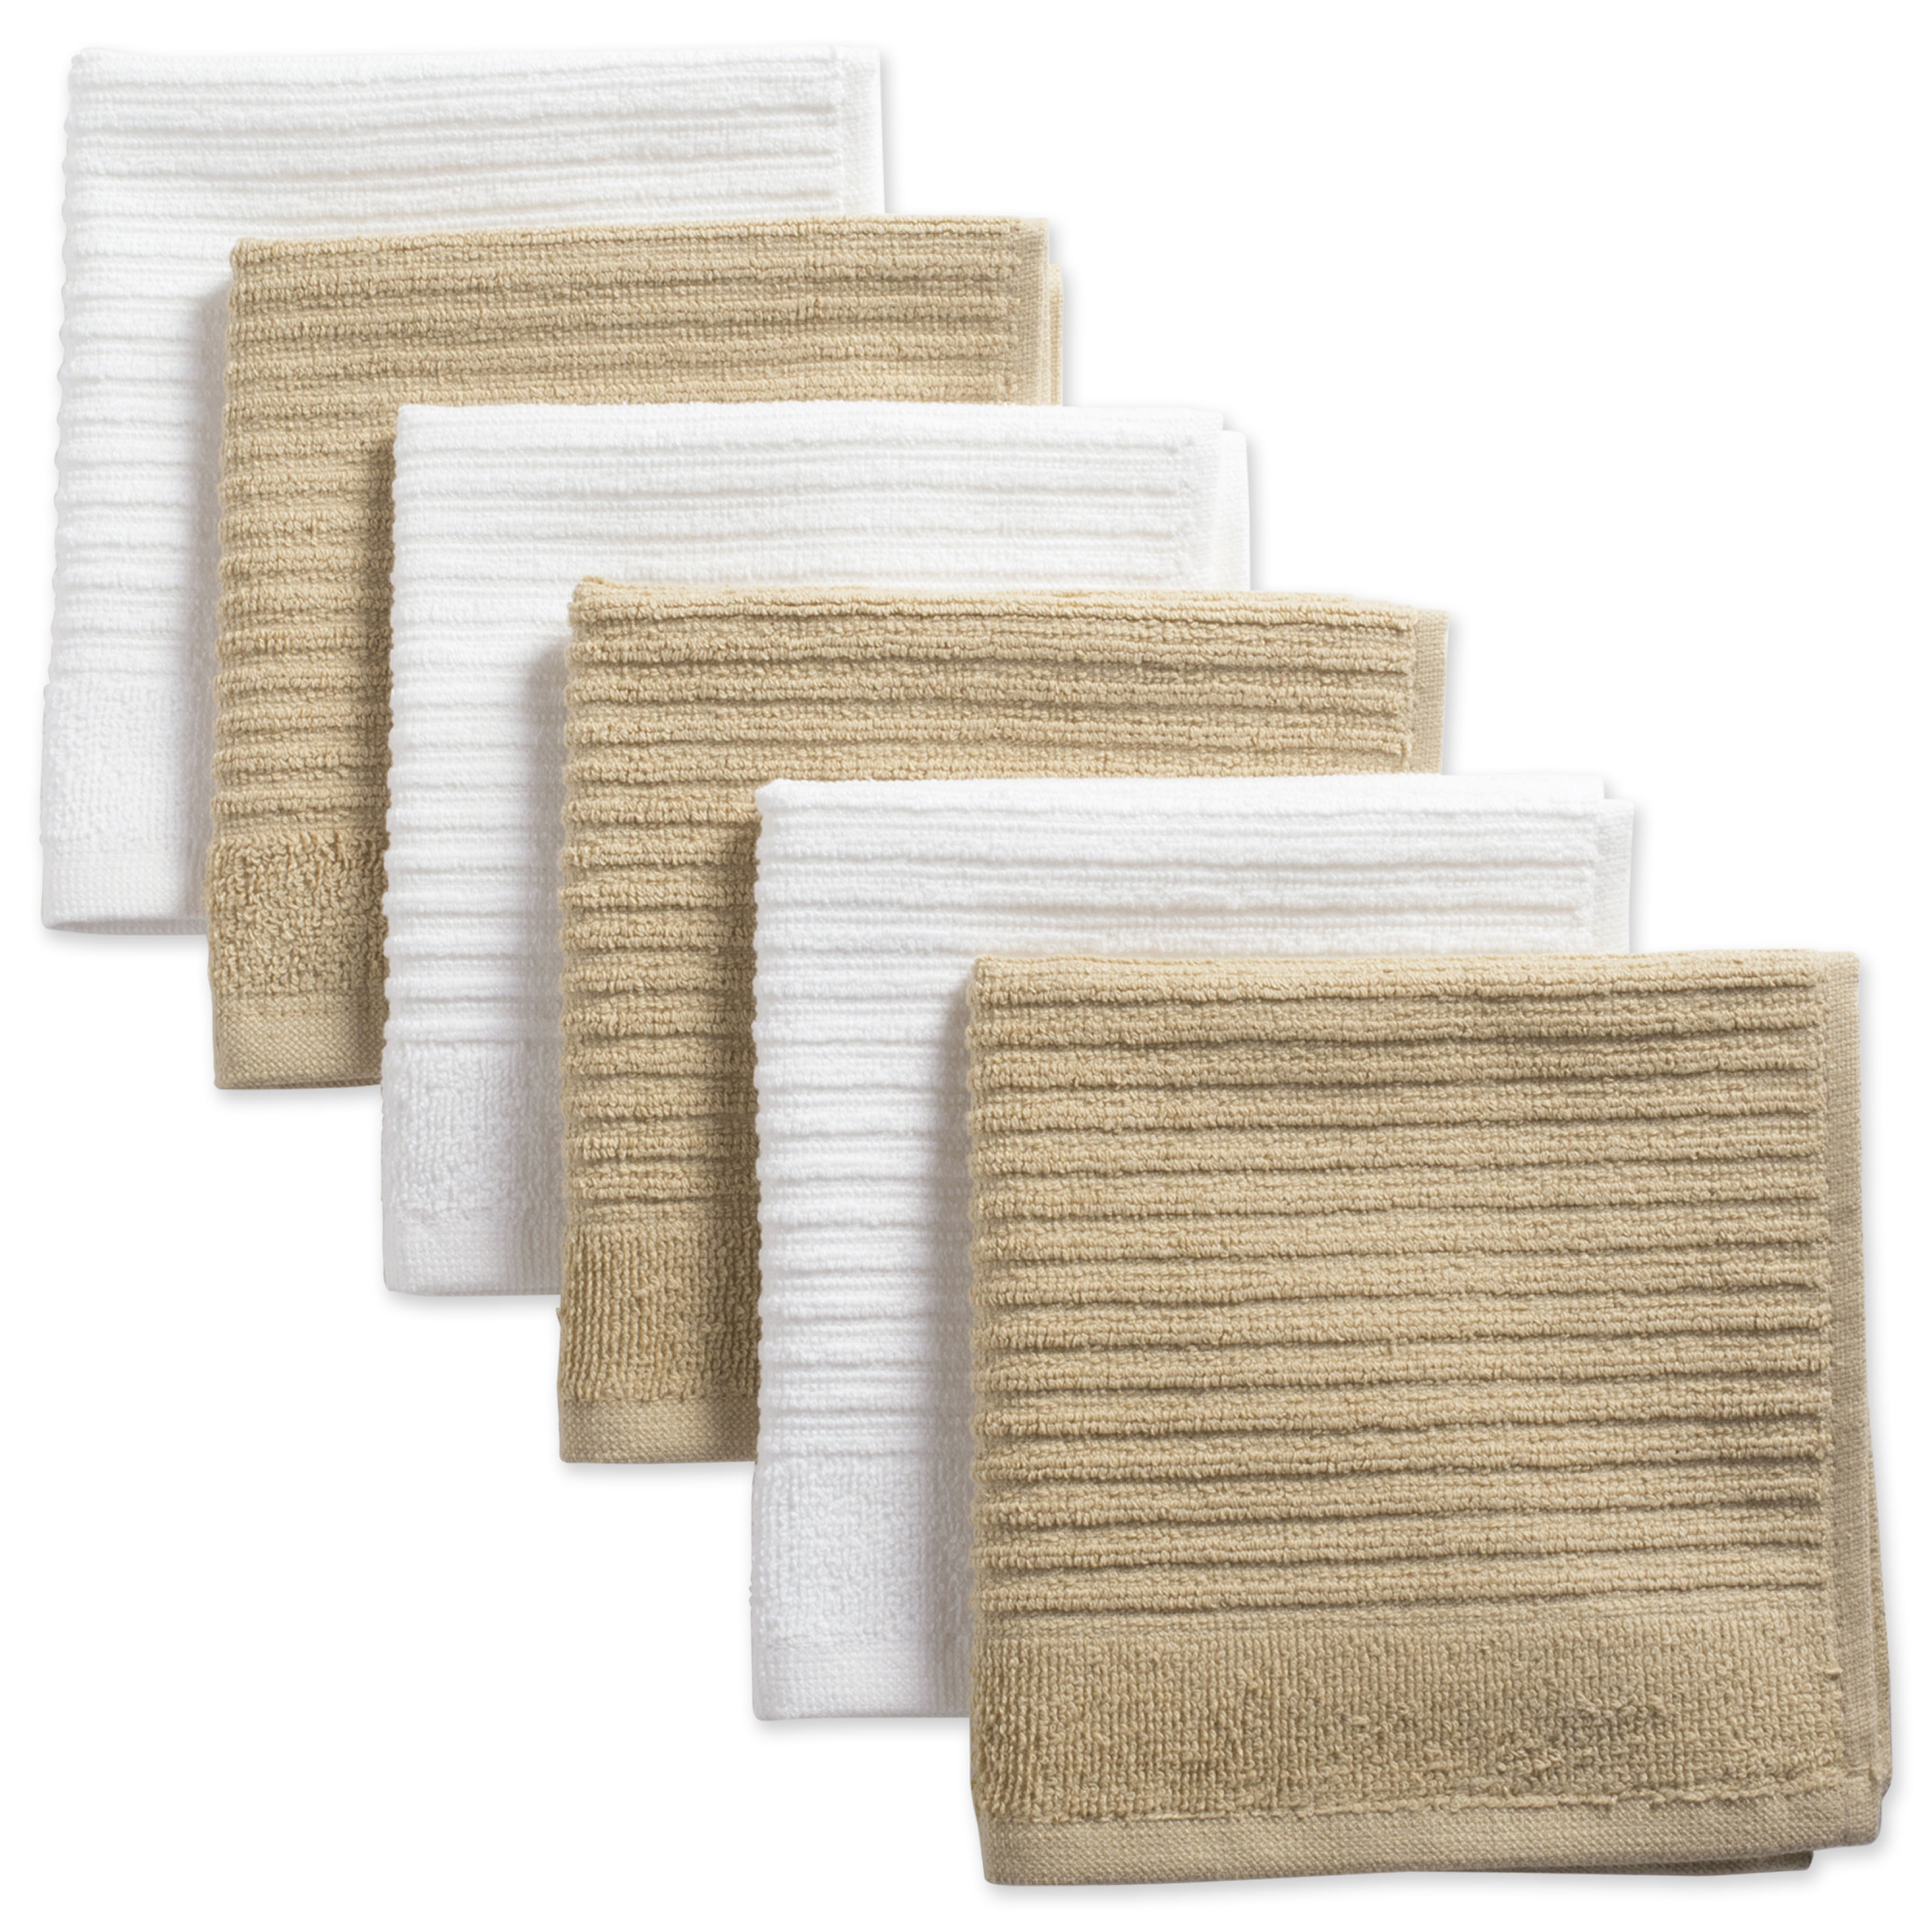 "Design Imports Assorted Ribbed Terry Dishcloth Set, Set of 6, 12""x12"", 100% Cotton, Multiple Colors"